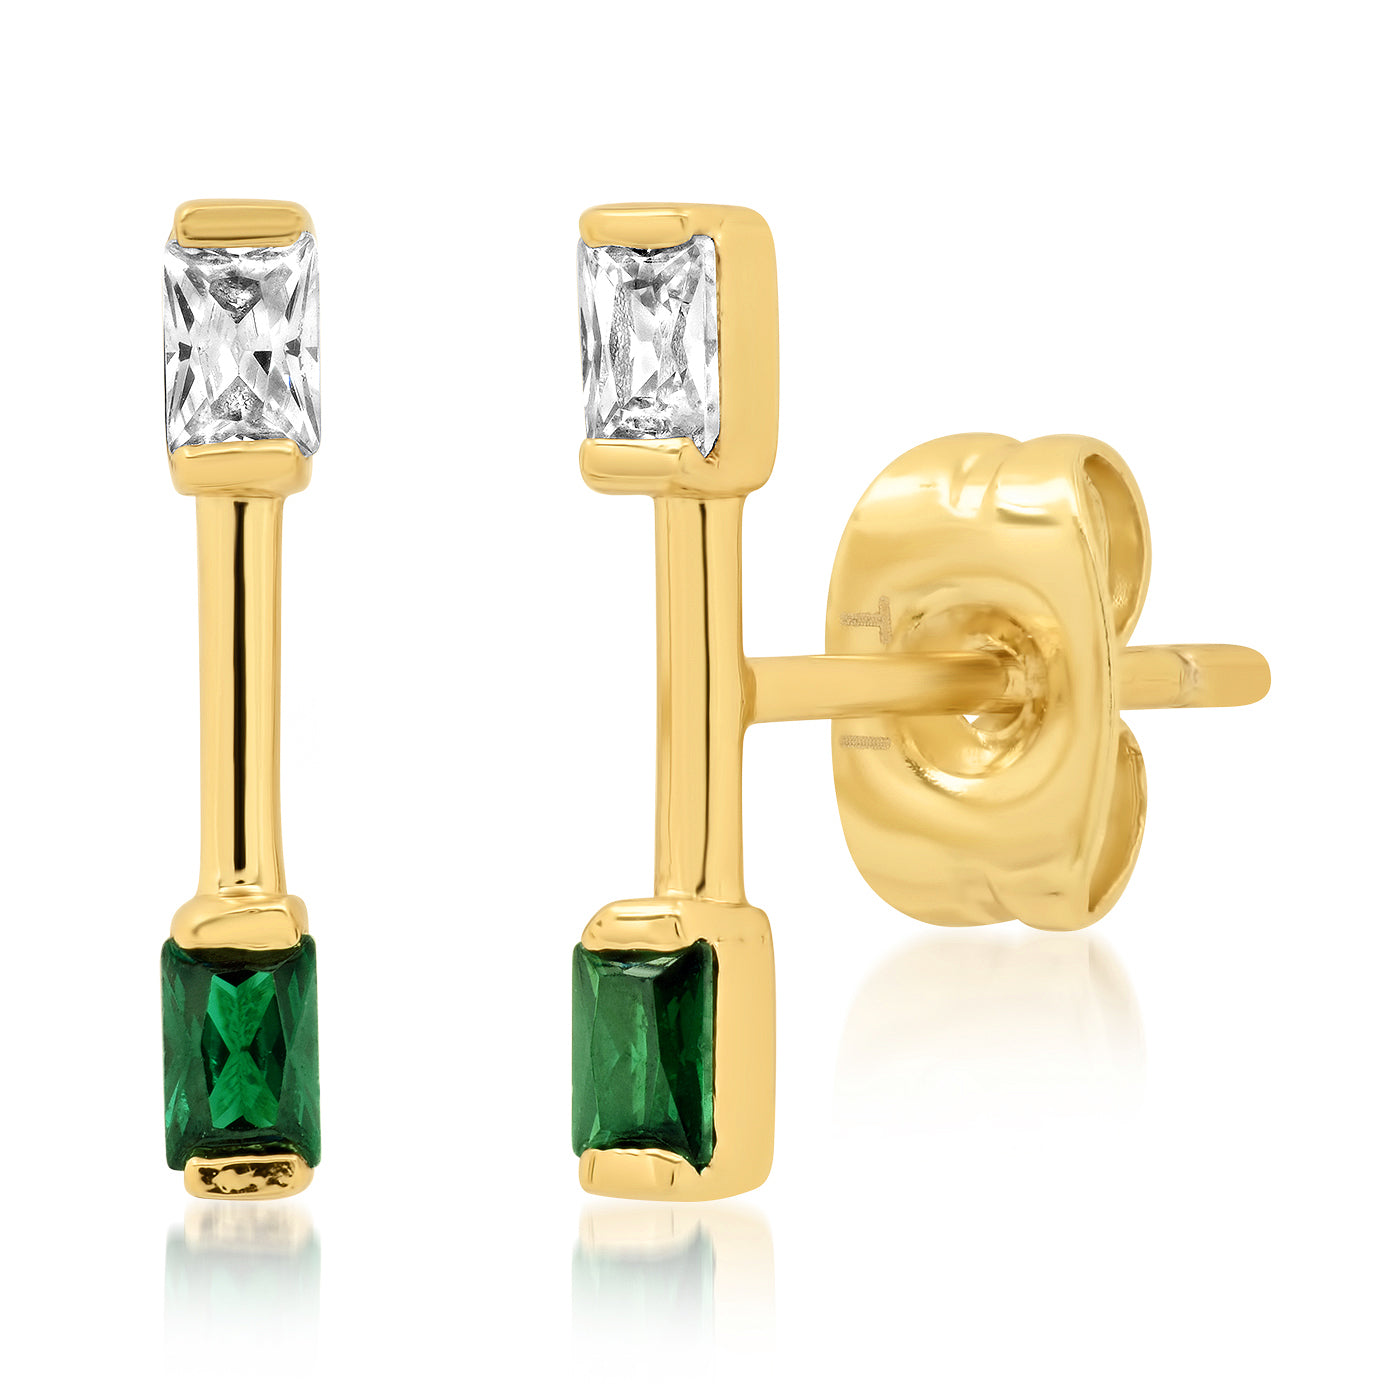 Gold Bar Stud with CZ and Emerald Green Stone Accents